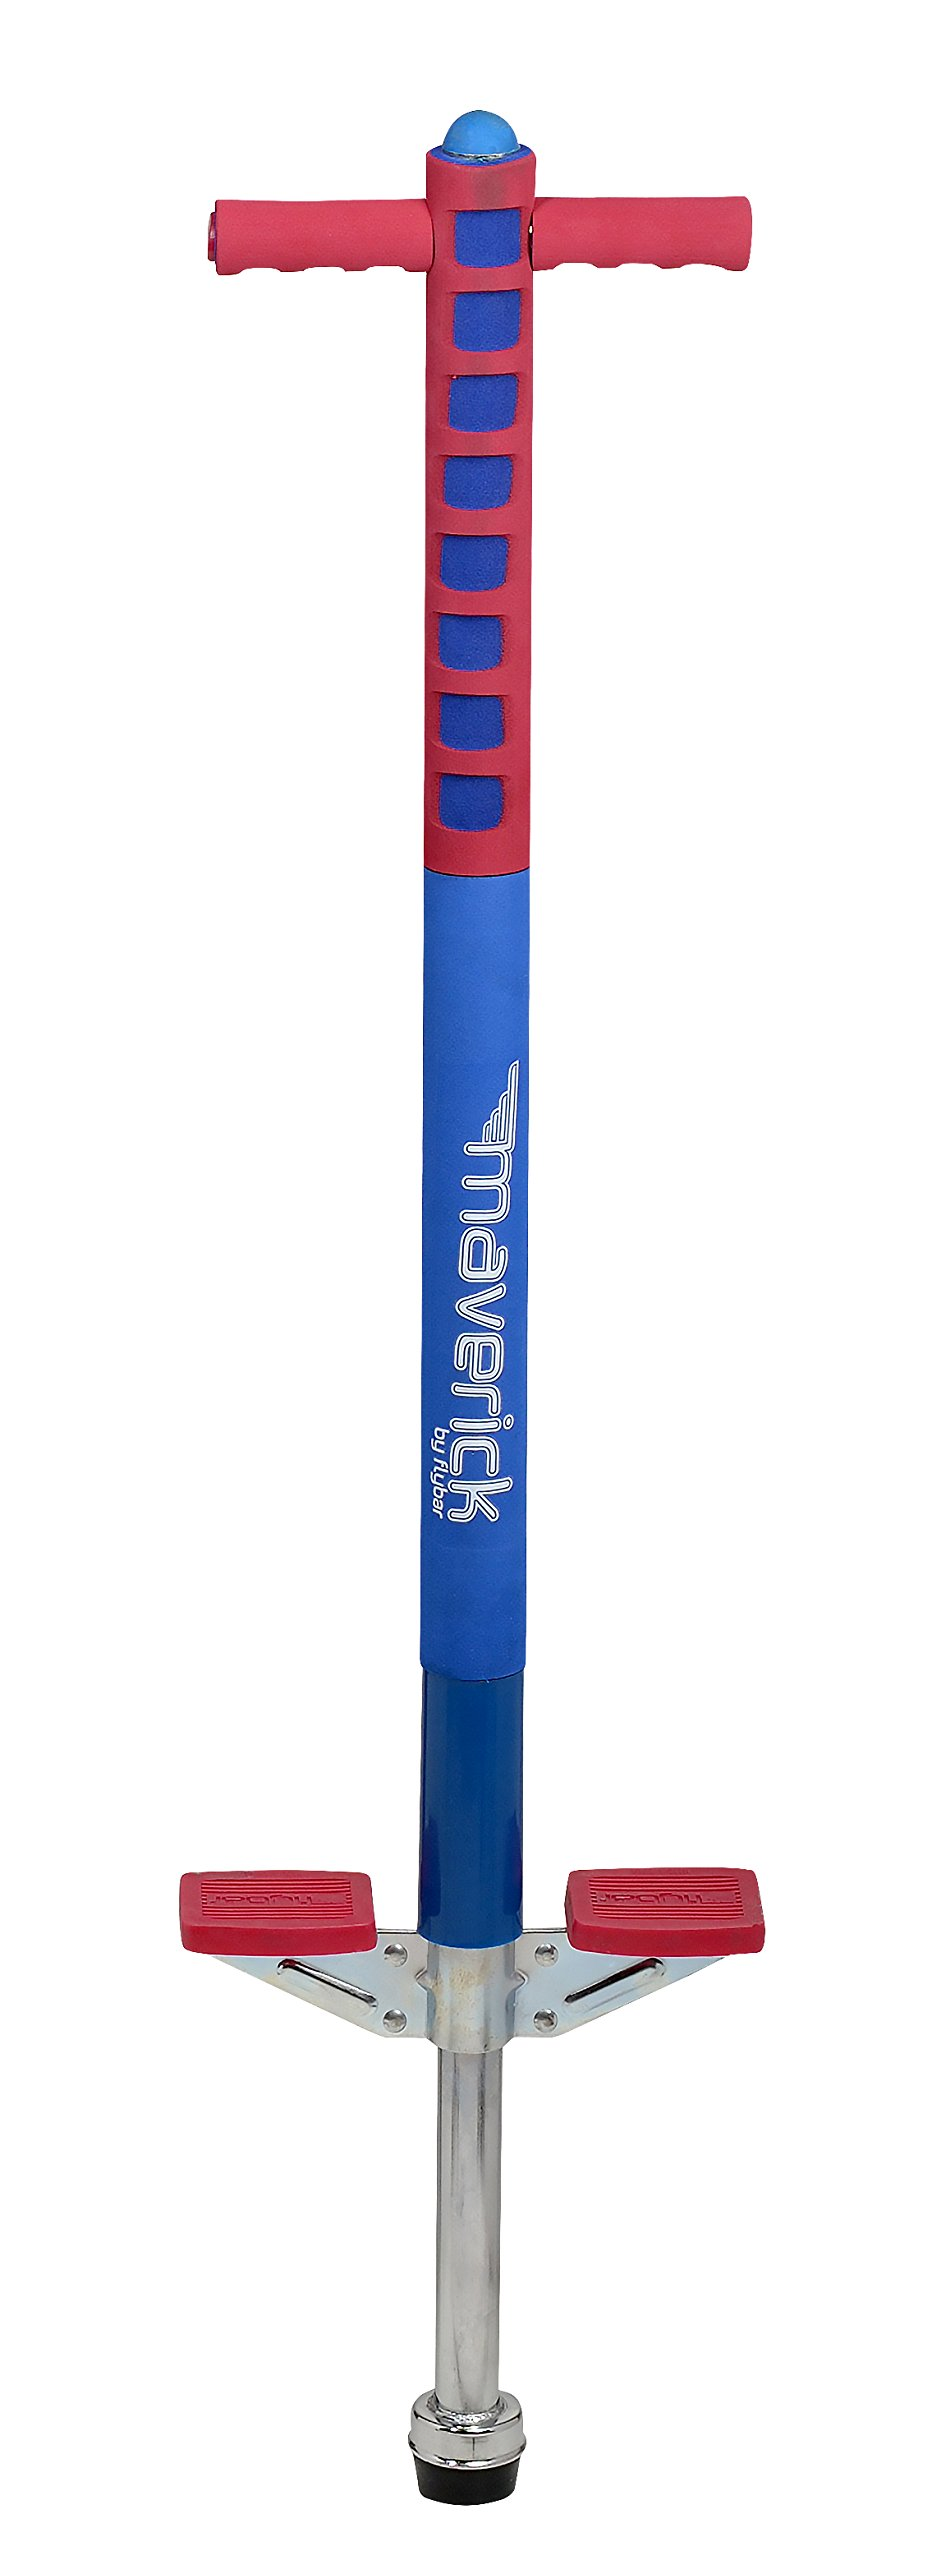 Flybar Foam Maverick Pogo Stick for Kids Ages 5+, Weights 40 to 80 Pounds by The Original Pogo Stick Company by Flybar